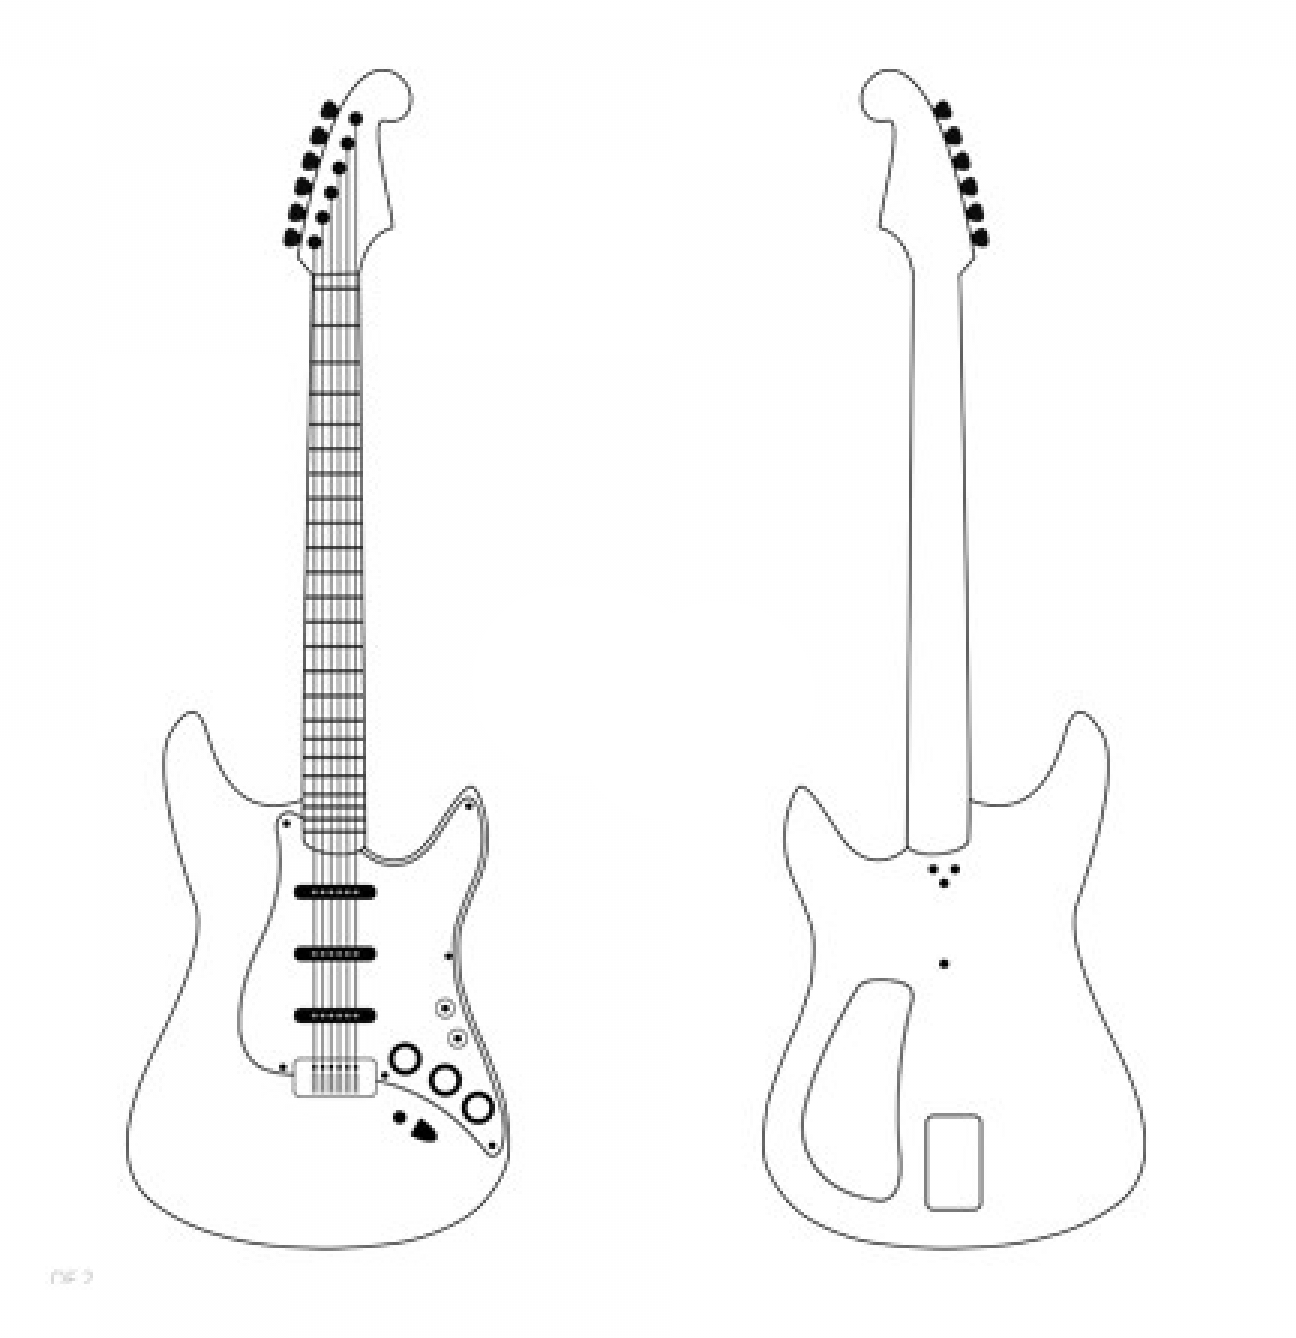 Electric Guitar Template In 2020 Paper Model Car Popsicle Stick Houses Diy Art